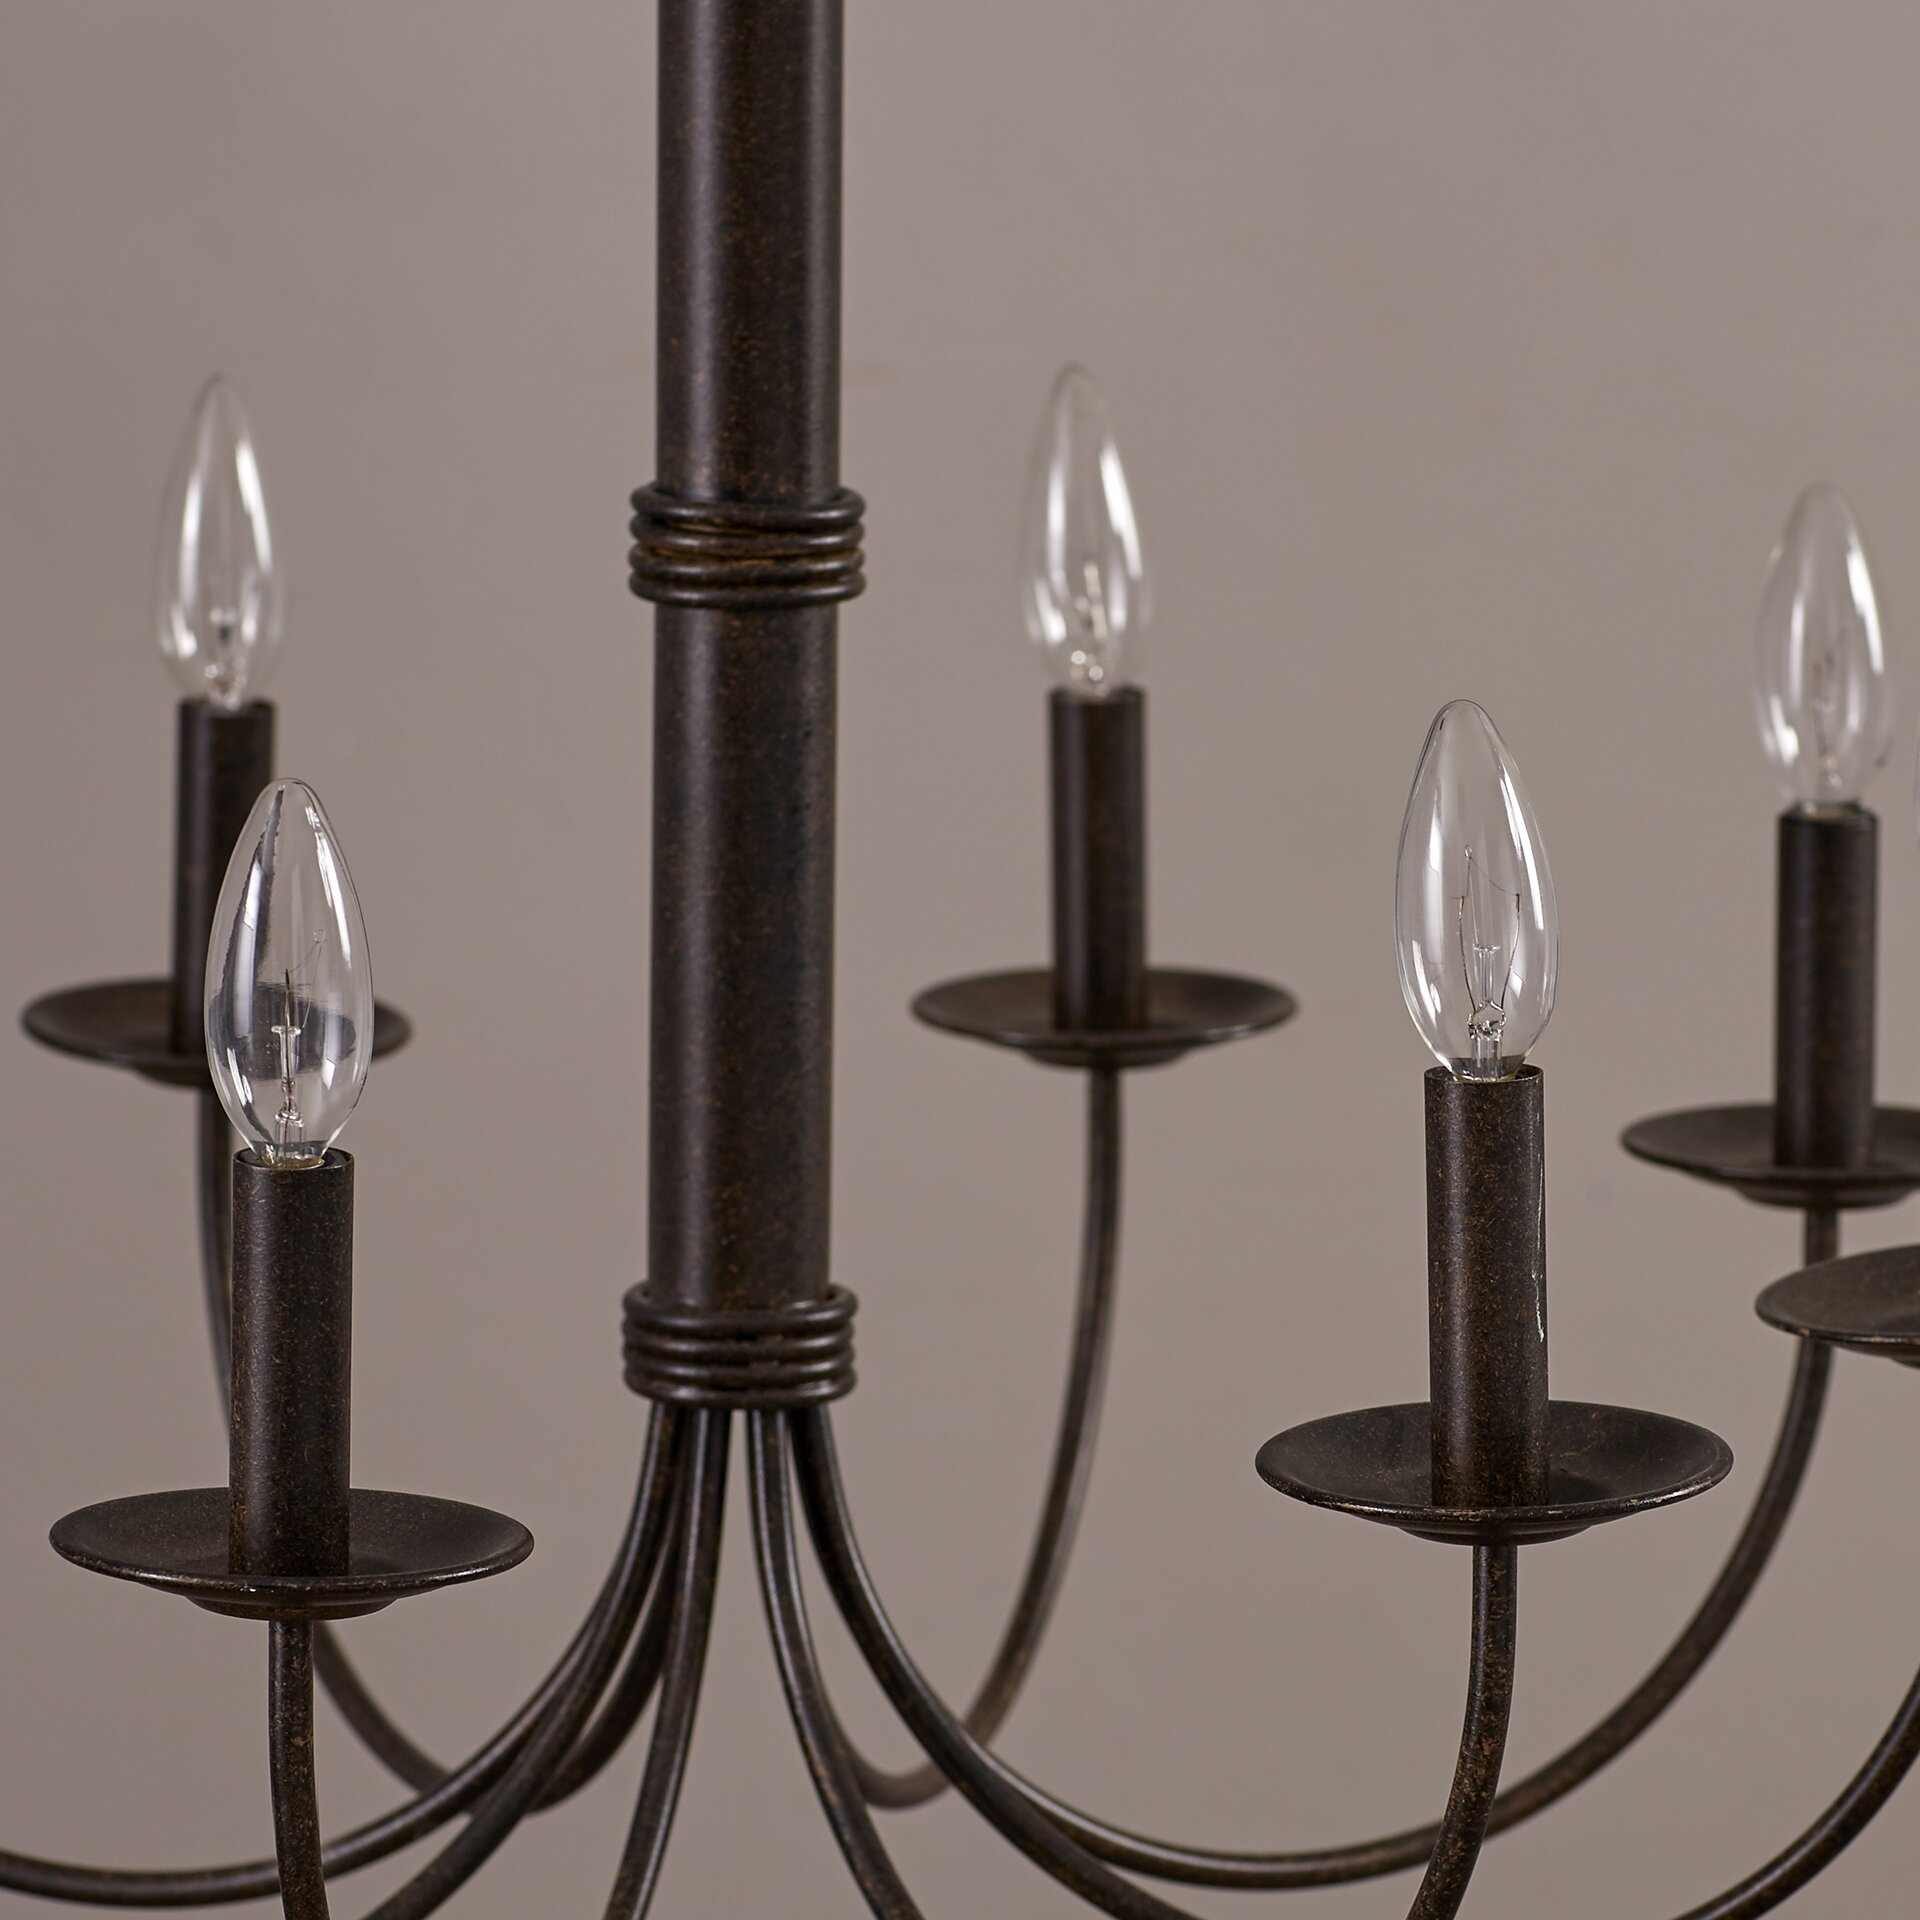 8 Light Candle Style Chandelier & Reviews